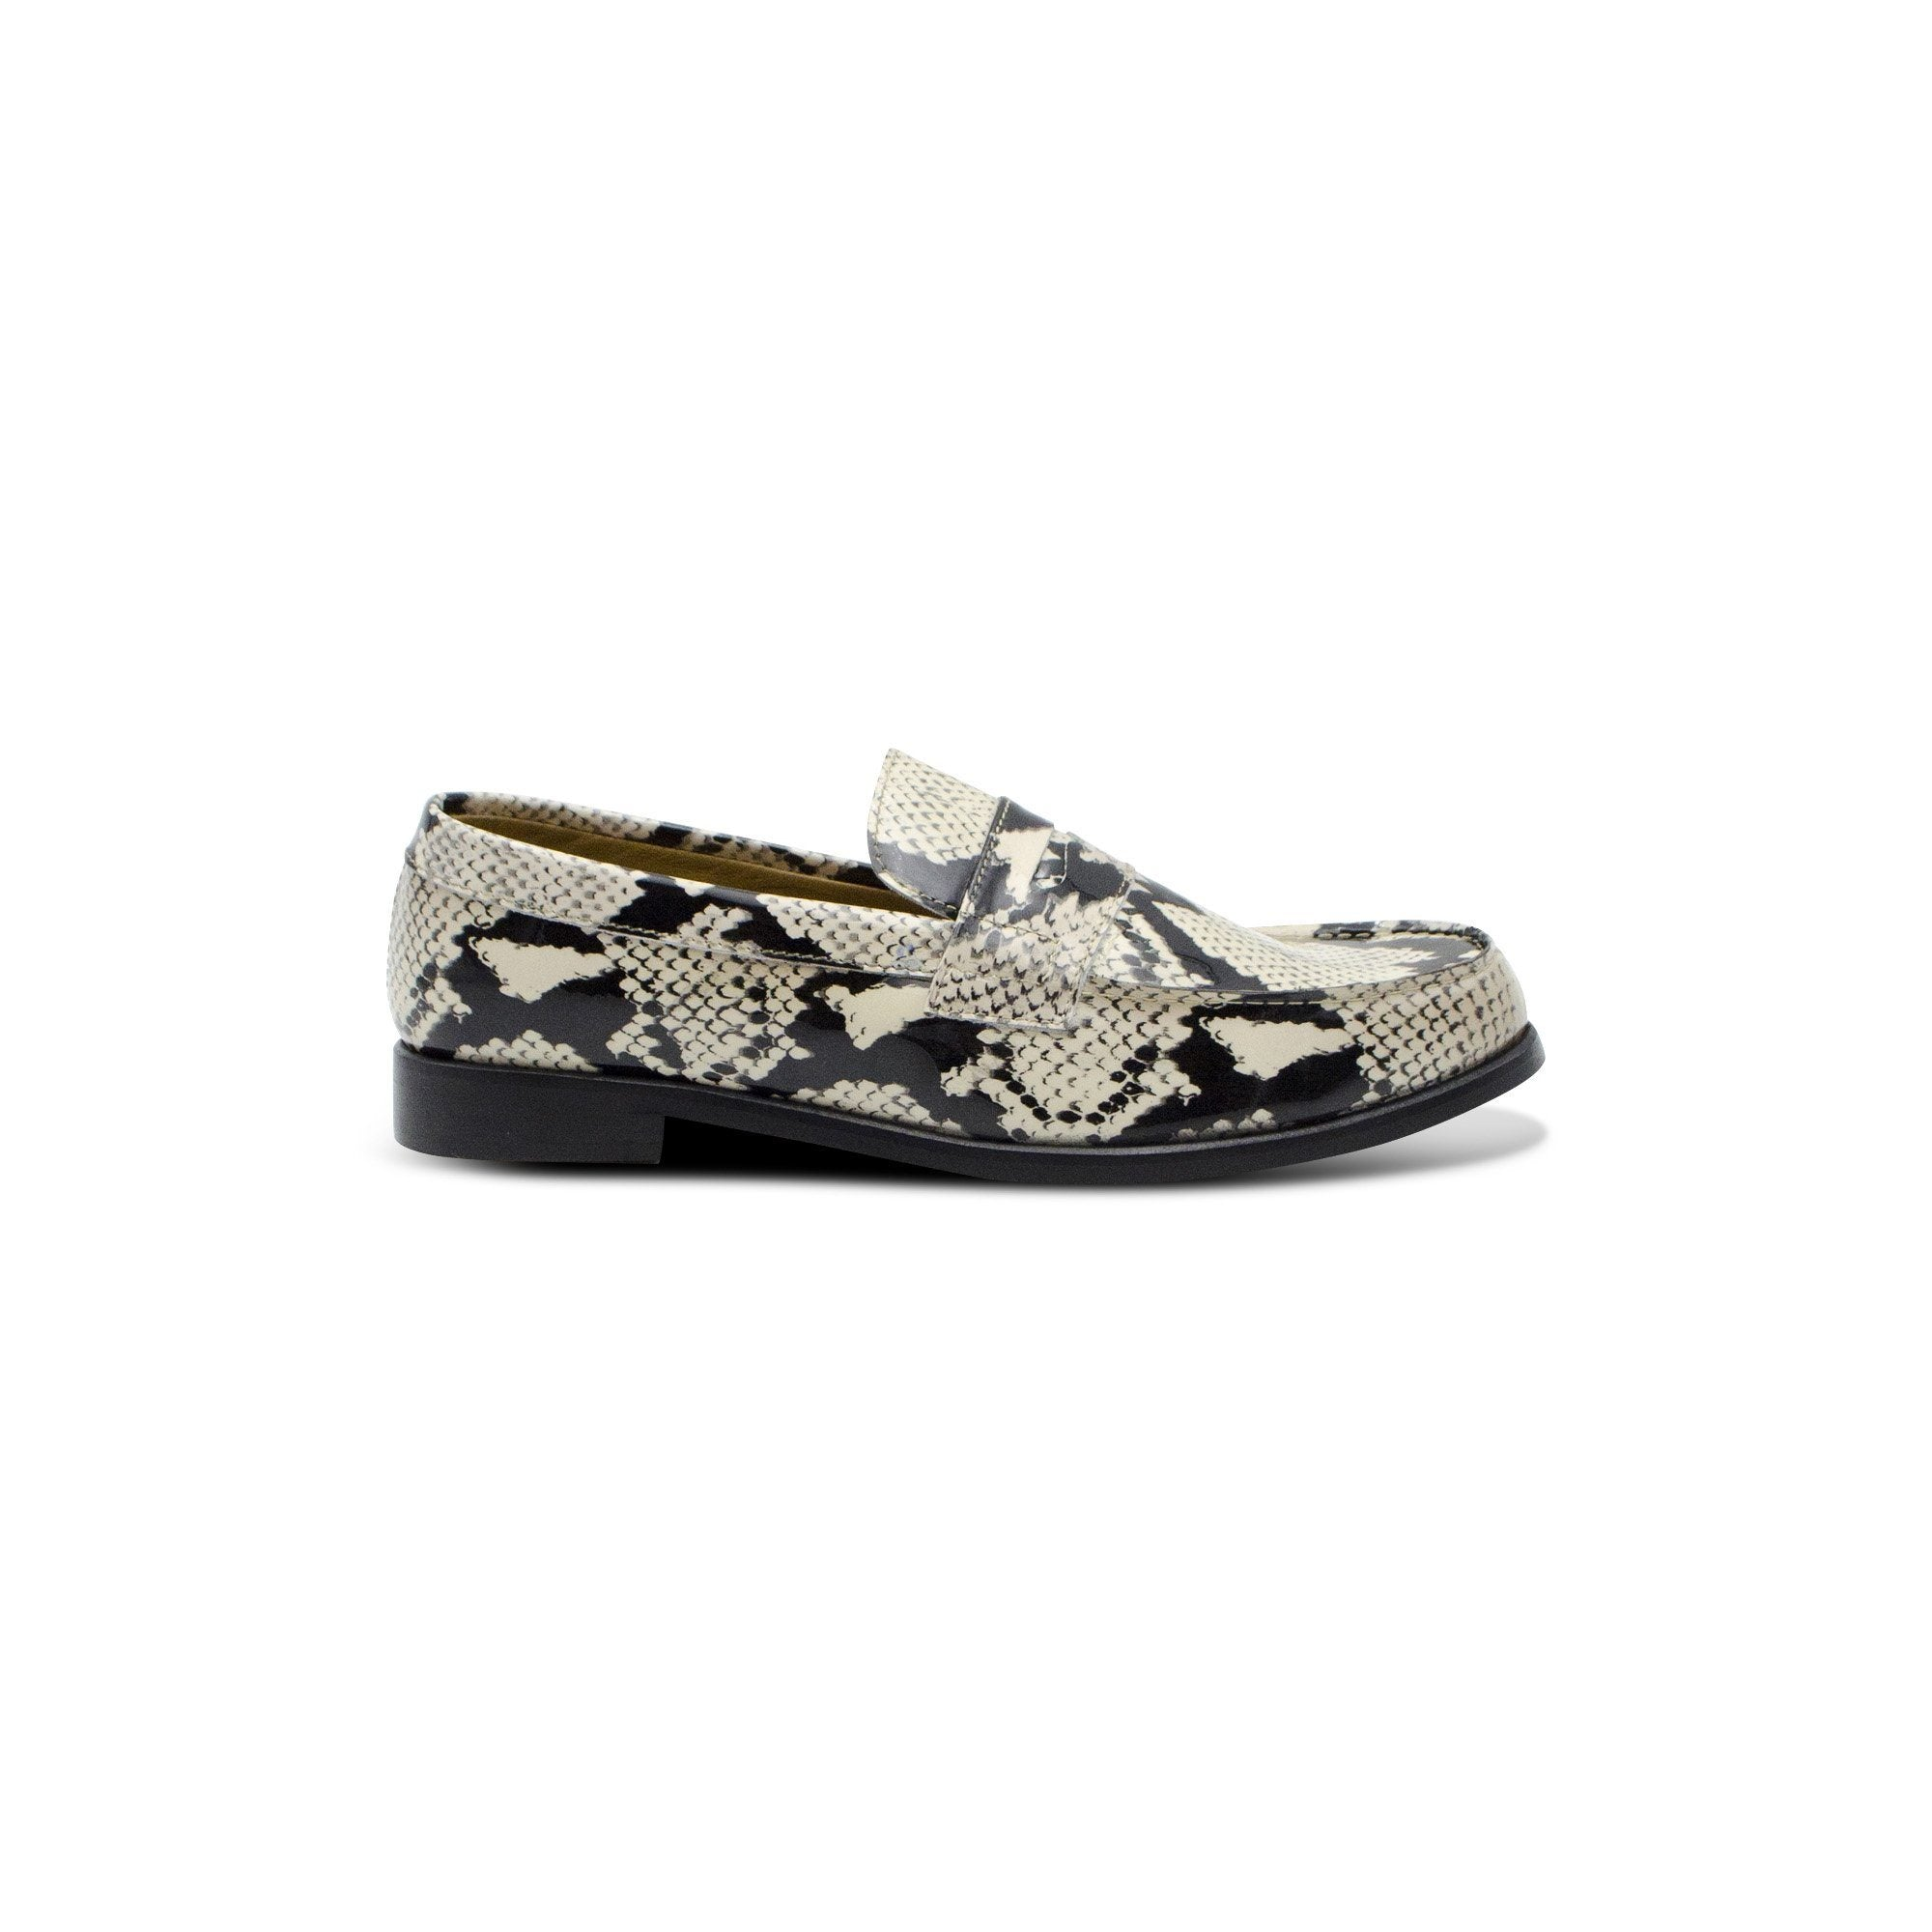 Mocassin College cuir vernis serpent English Classics Mocassins English Classics